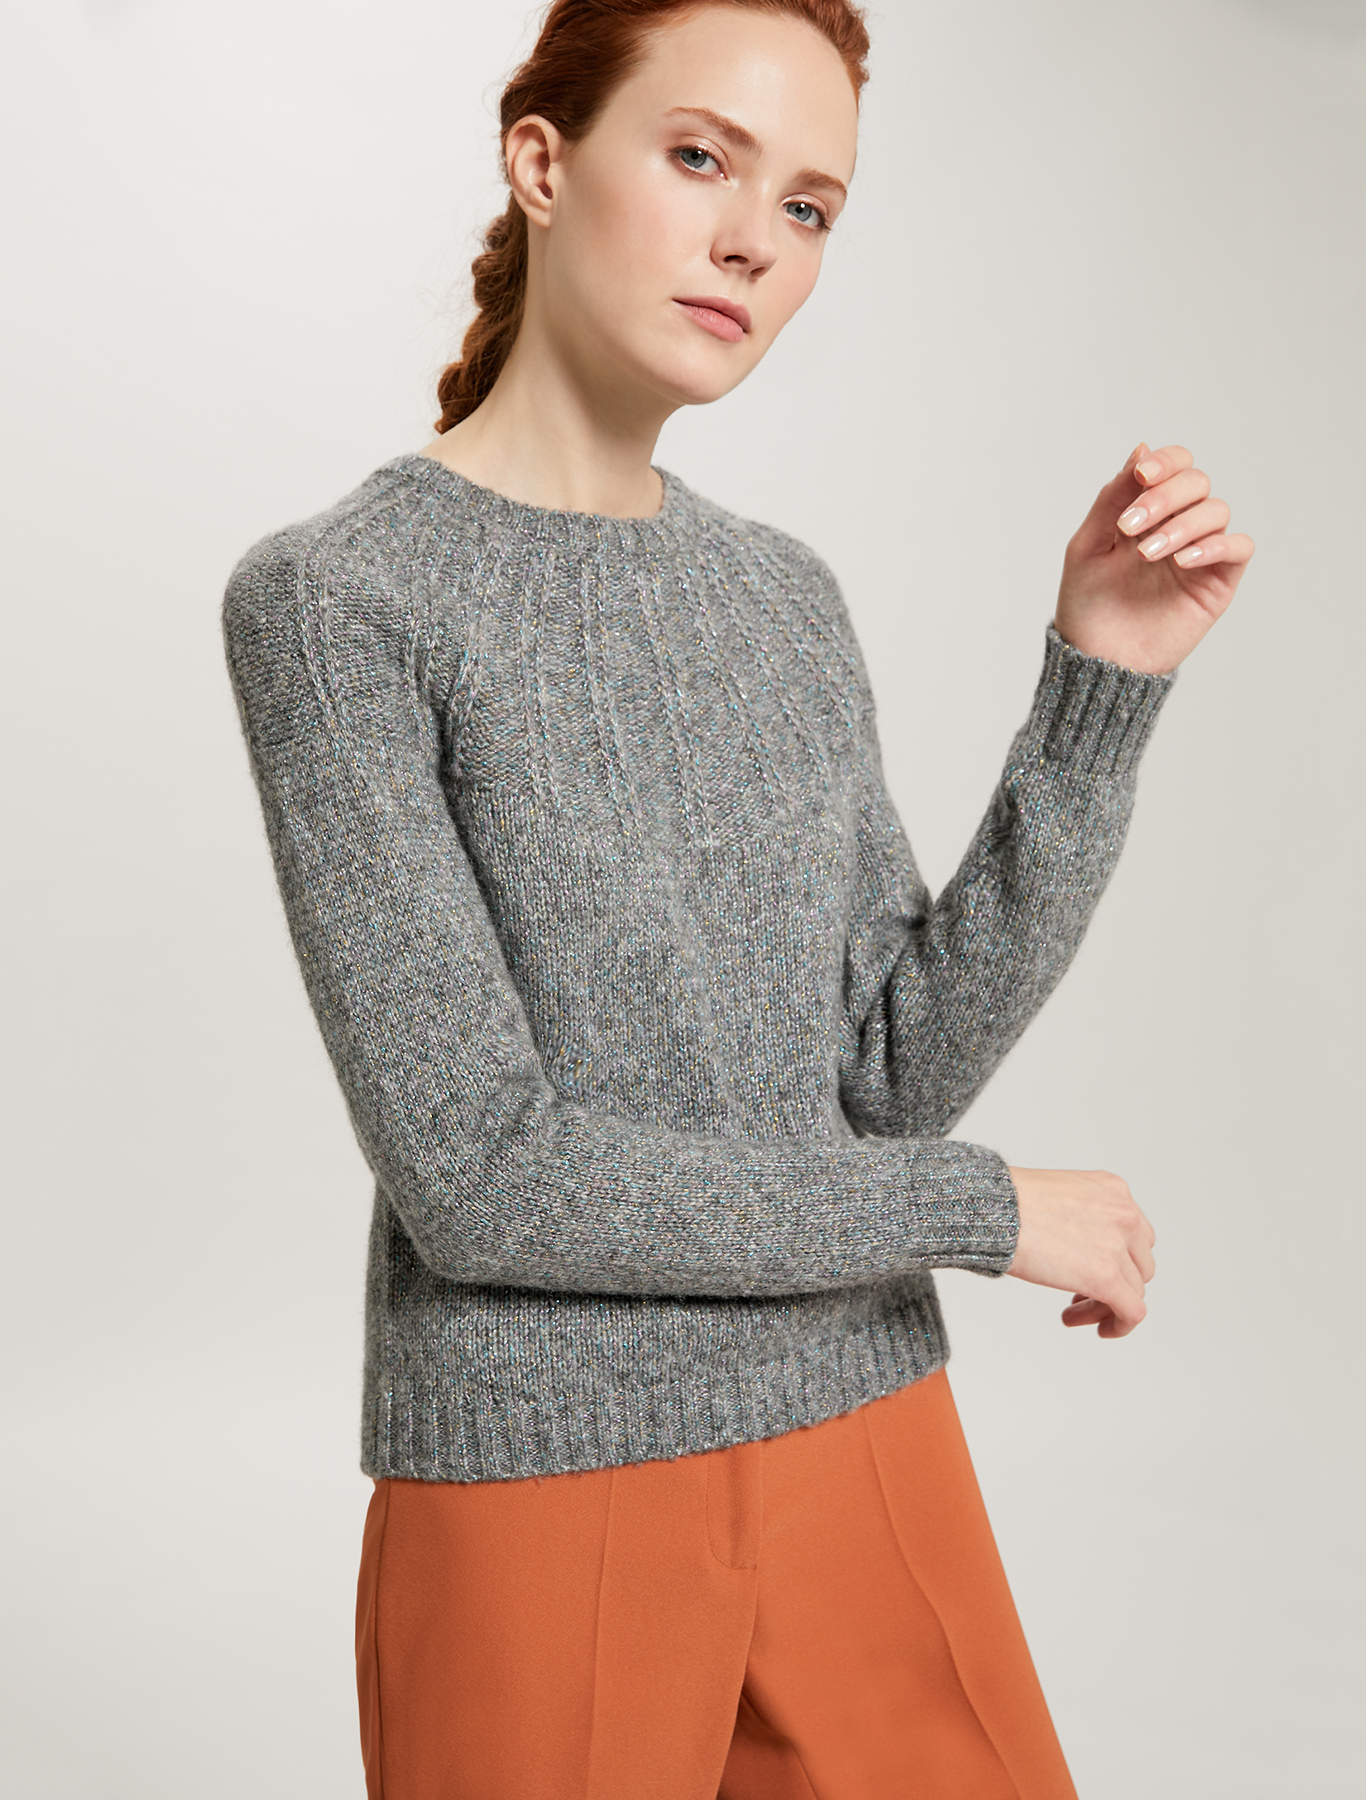 Lamé jumper with ribbed yoke - light grey - pennyblack